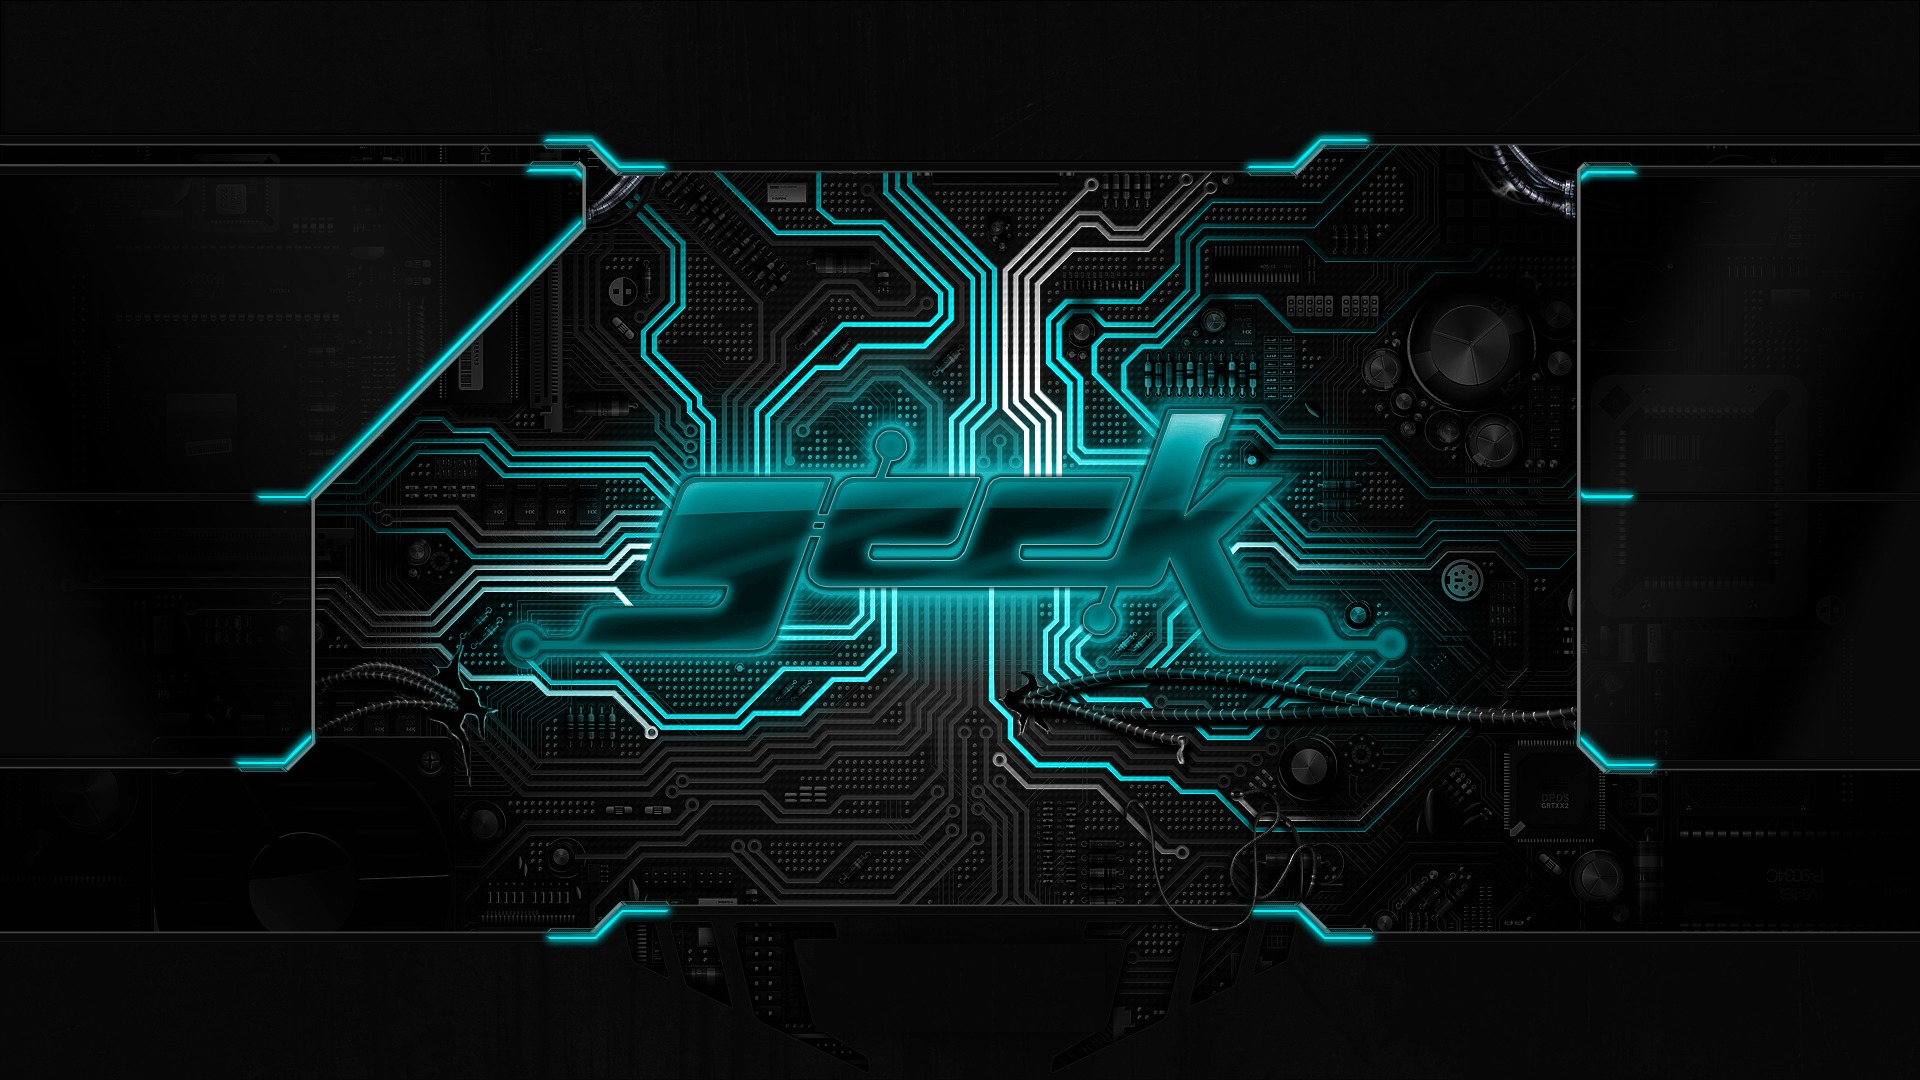 geek chip circuit board neon wallpaper background 1920x1080